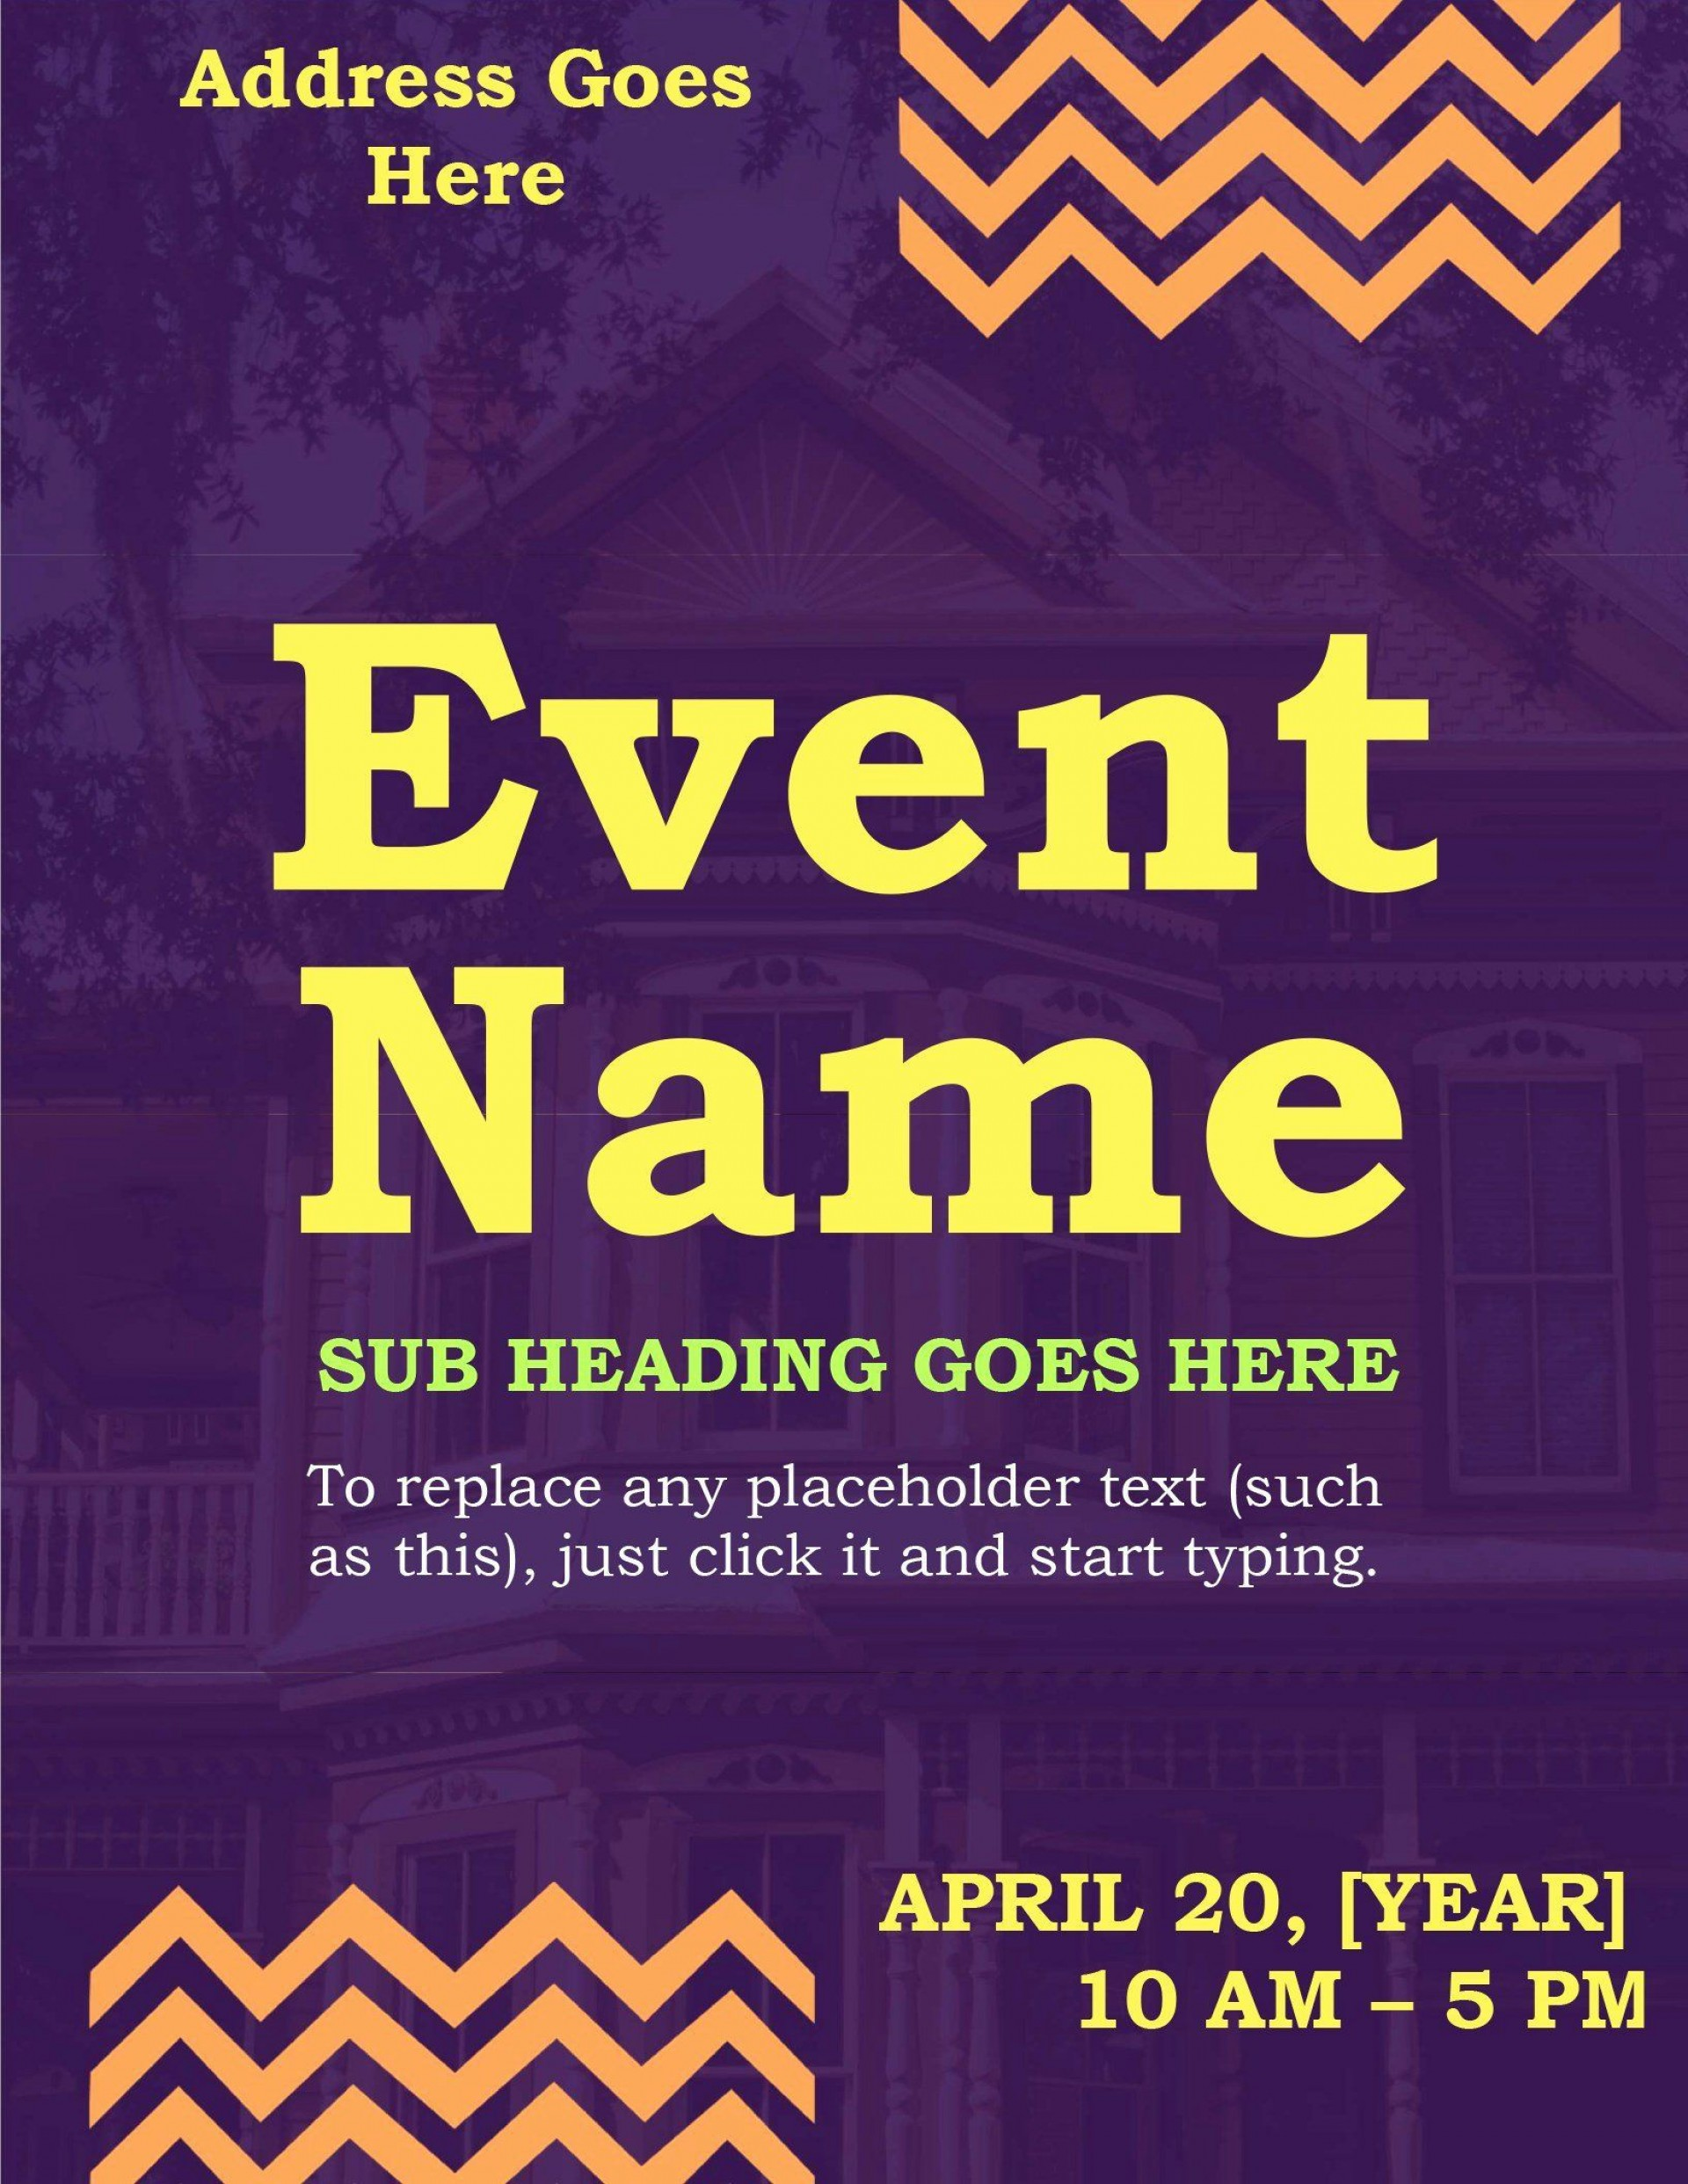 008 Imposing Event Flyer Template Word High Resolution  Free Spring1920